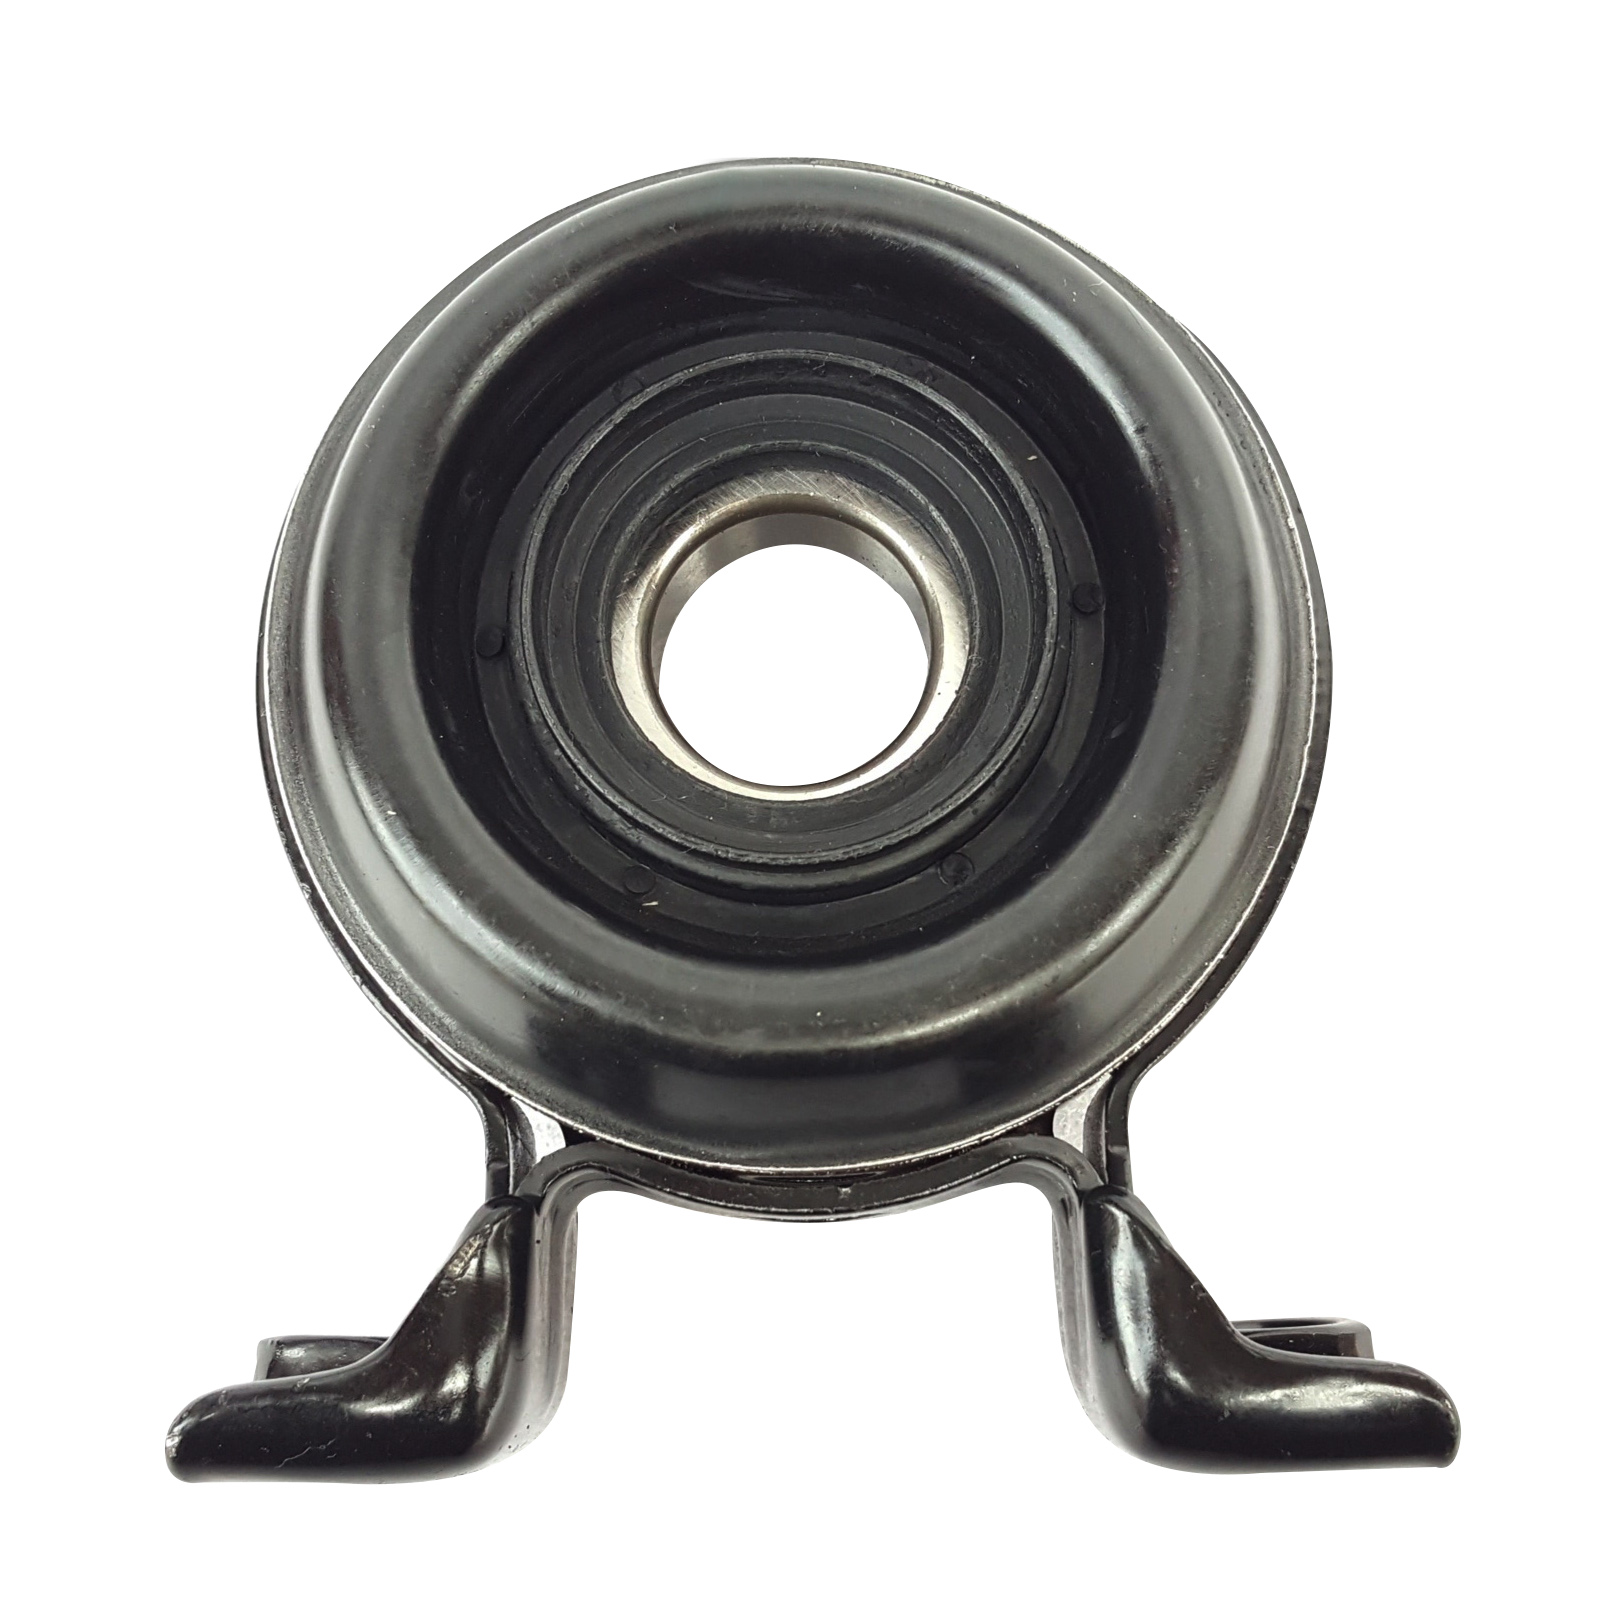 DriveShaft Centre Bearing Fit For Holden TF Rodeo 4x4 4WD 88-ON image